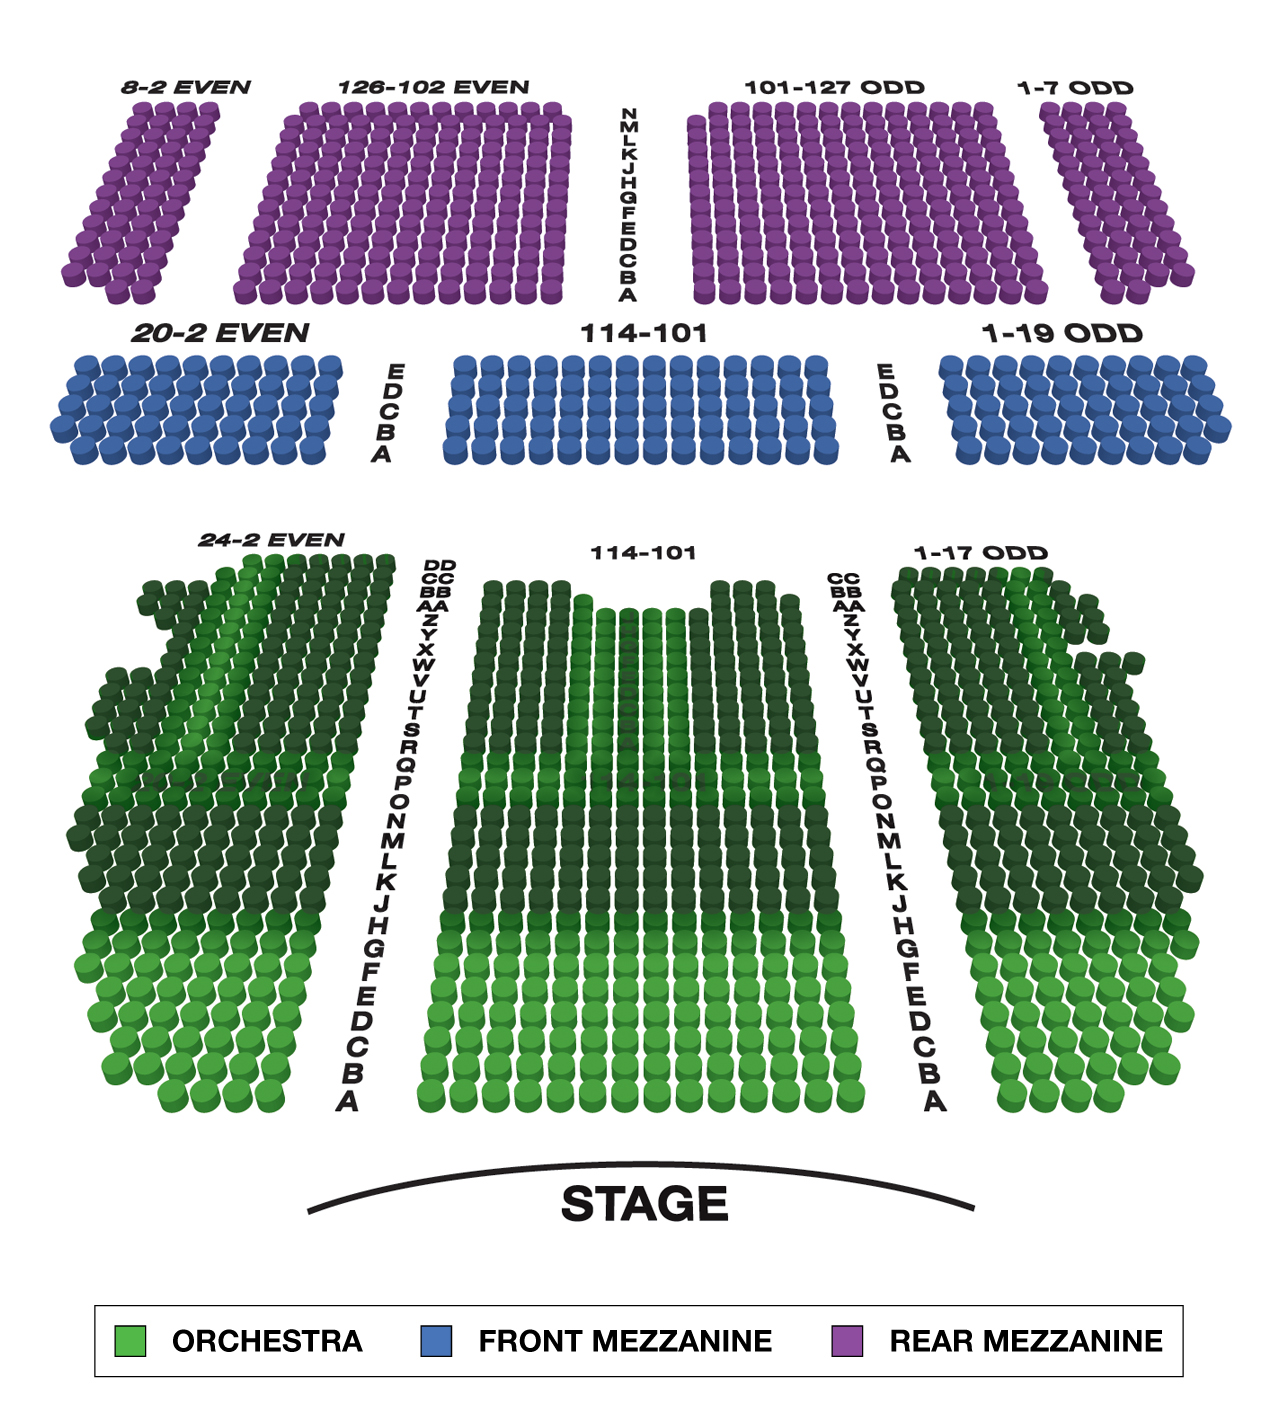 Lunt Fontanne Theatre Large Broadway Seating Charts